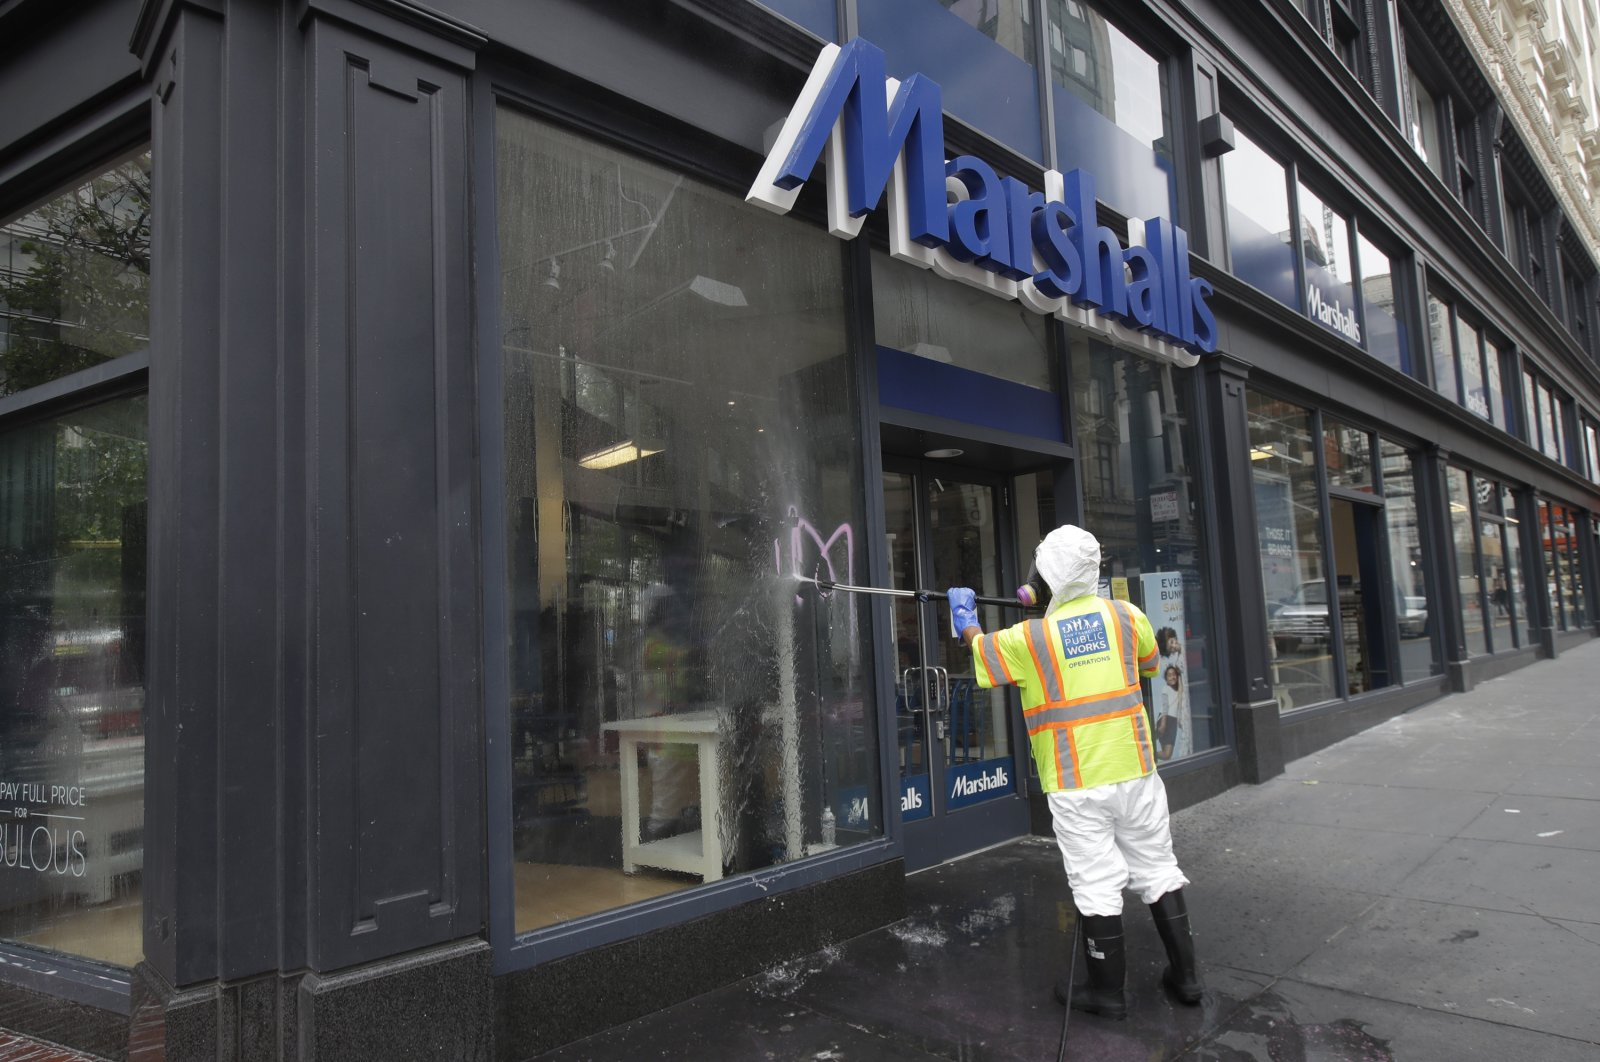 A worker with San Francisco Public Works sprays graffitti off the window of a Marshalls store in San Francisco, California, U.S., May 31, 2020, after protests over the Memorial Day death of George Floyd. (AP Photo)